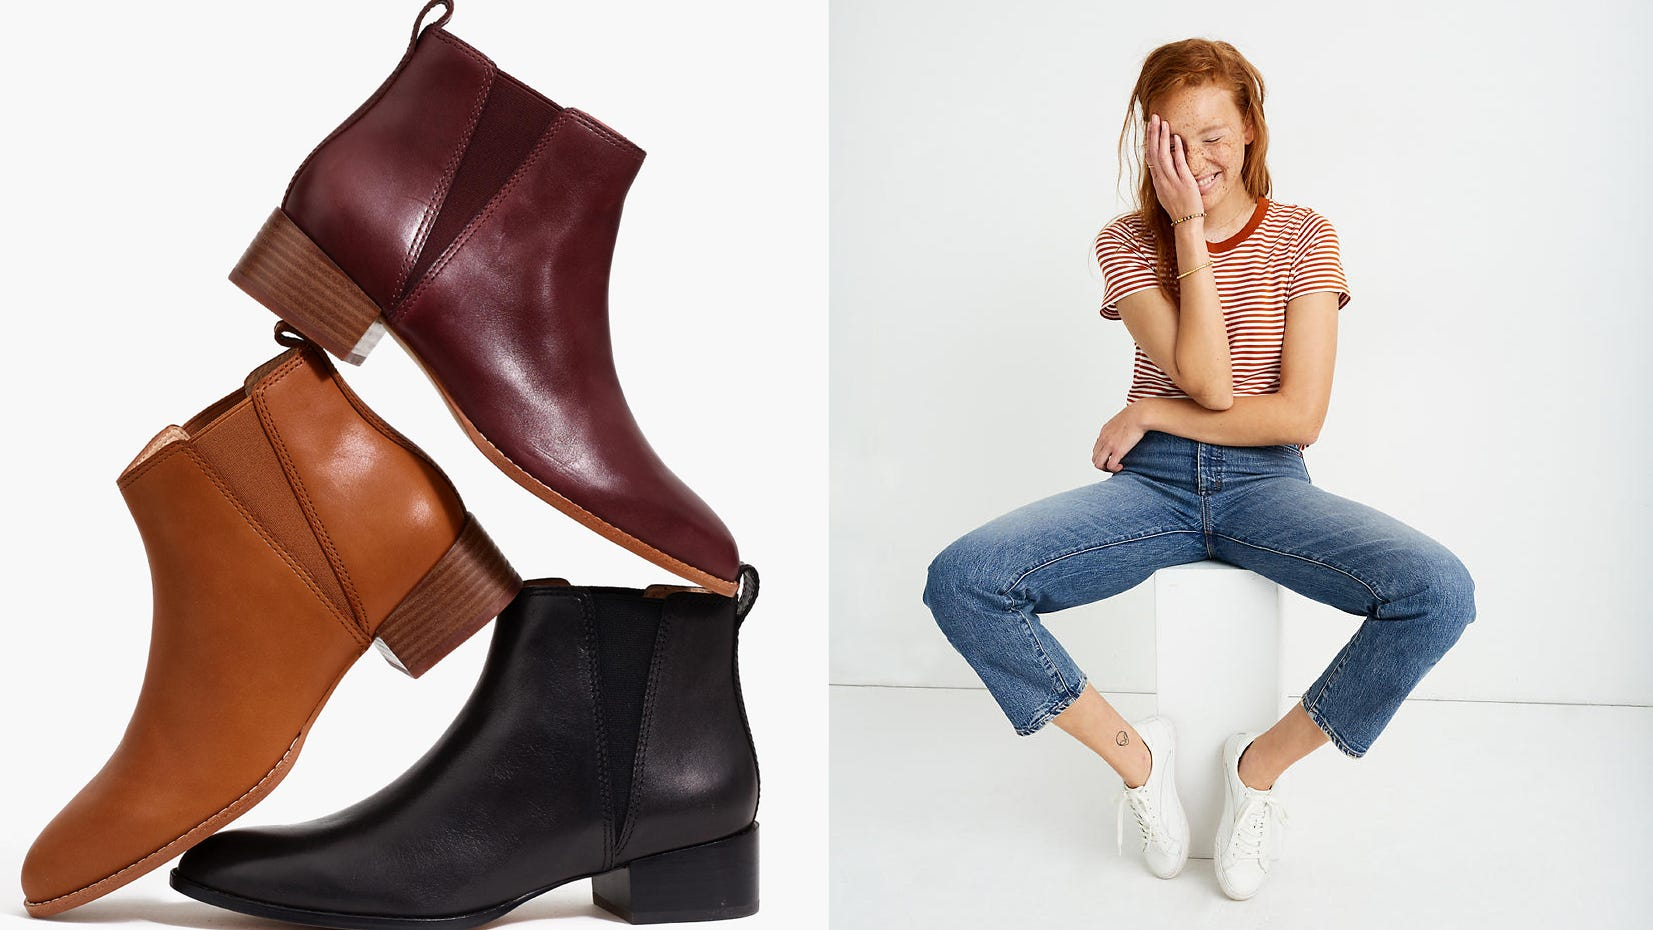 10 incredible deals from the 2019 Nordstrom Winter Sale